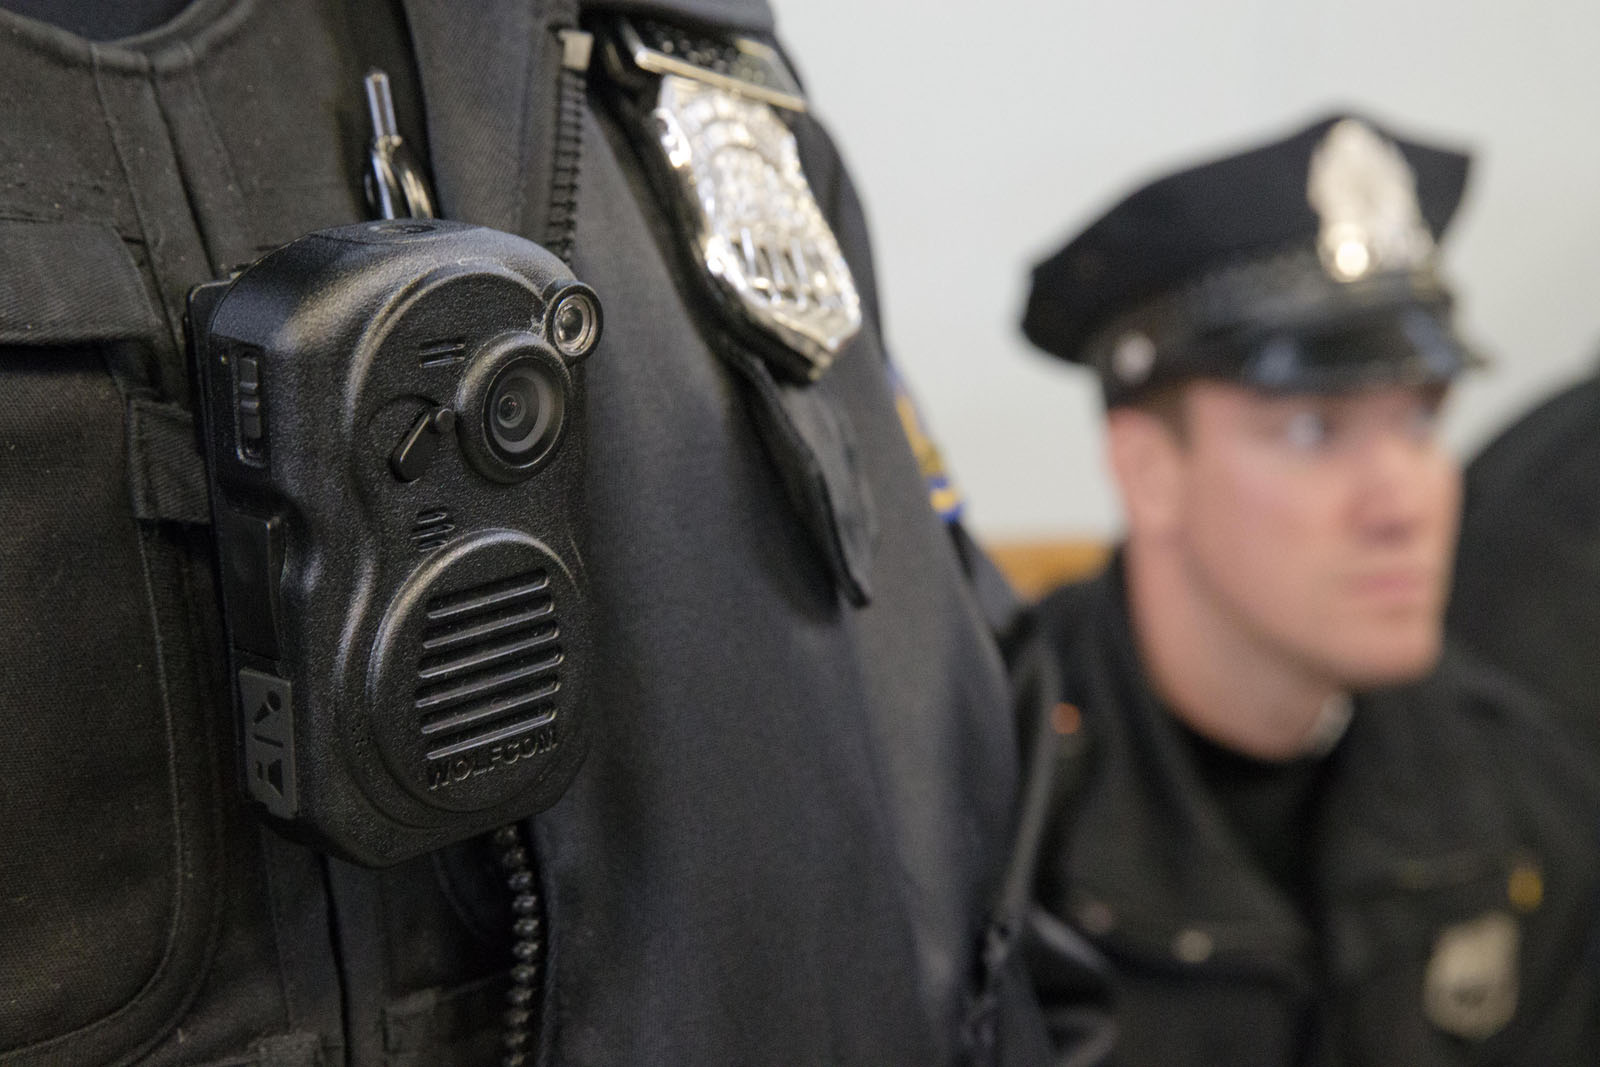 Police in Annapolis, Md. to test body worn cameras